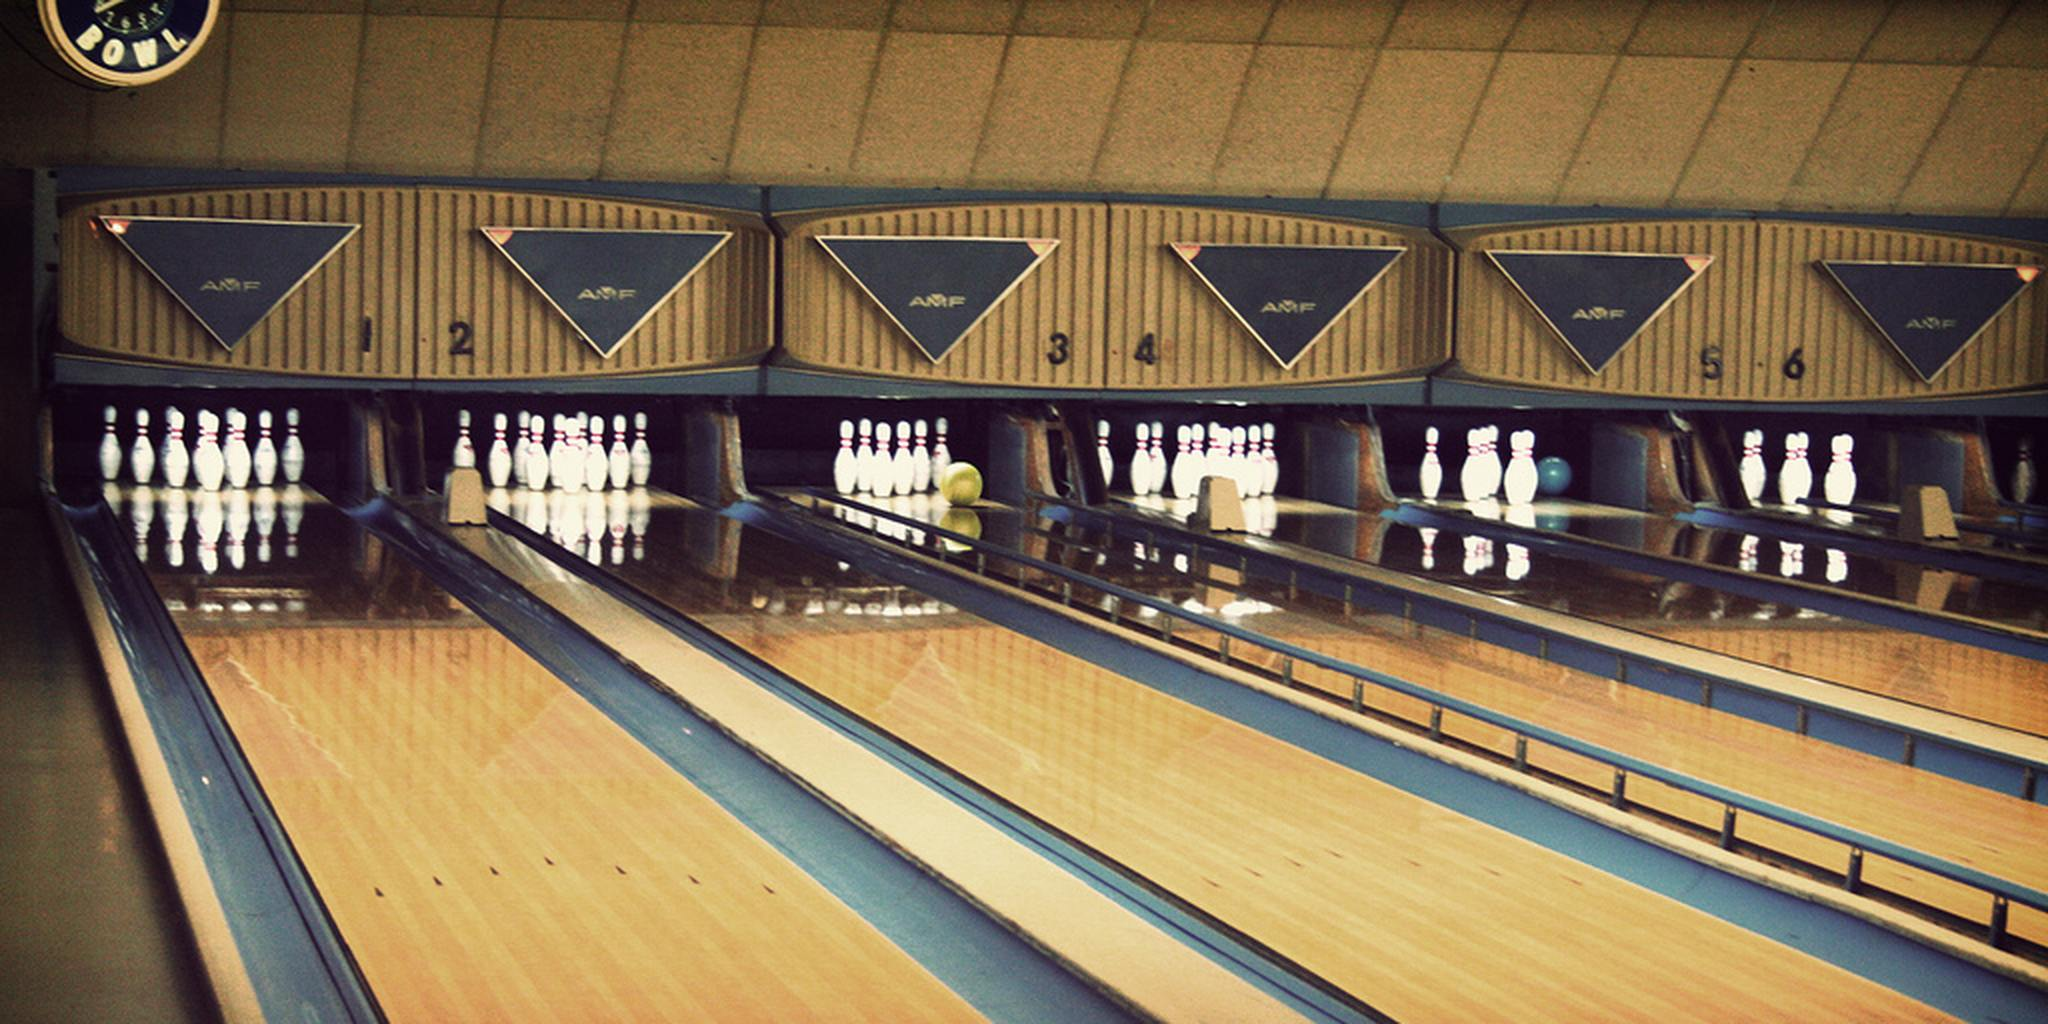 Bowling alley photo